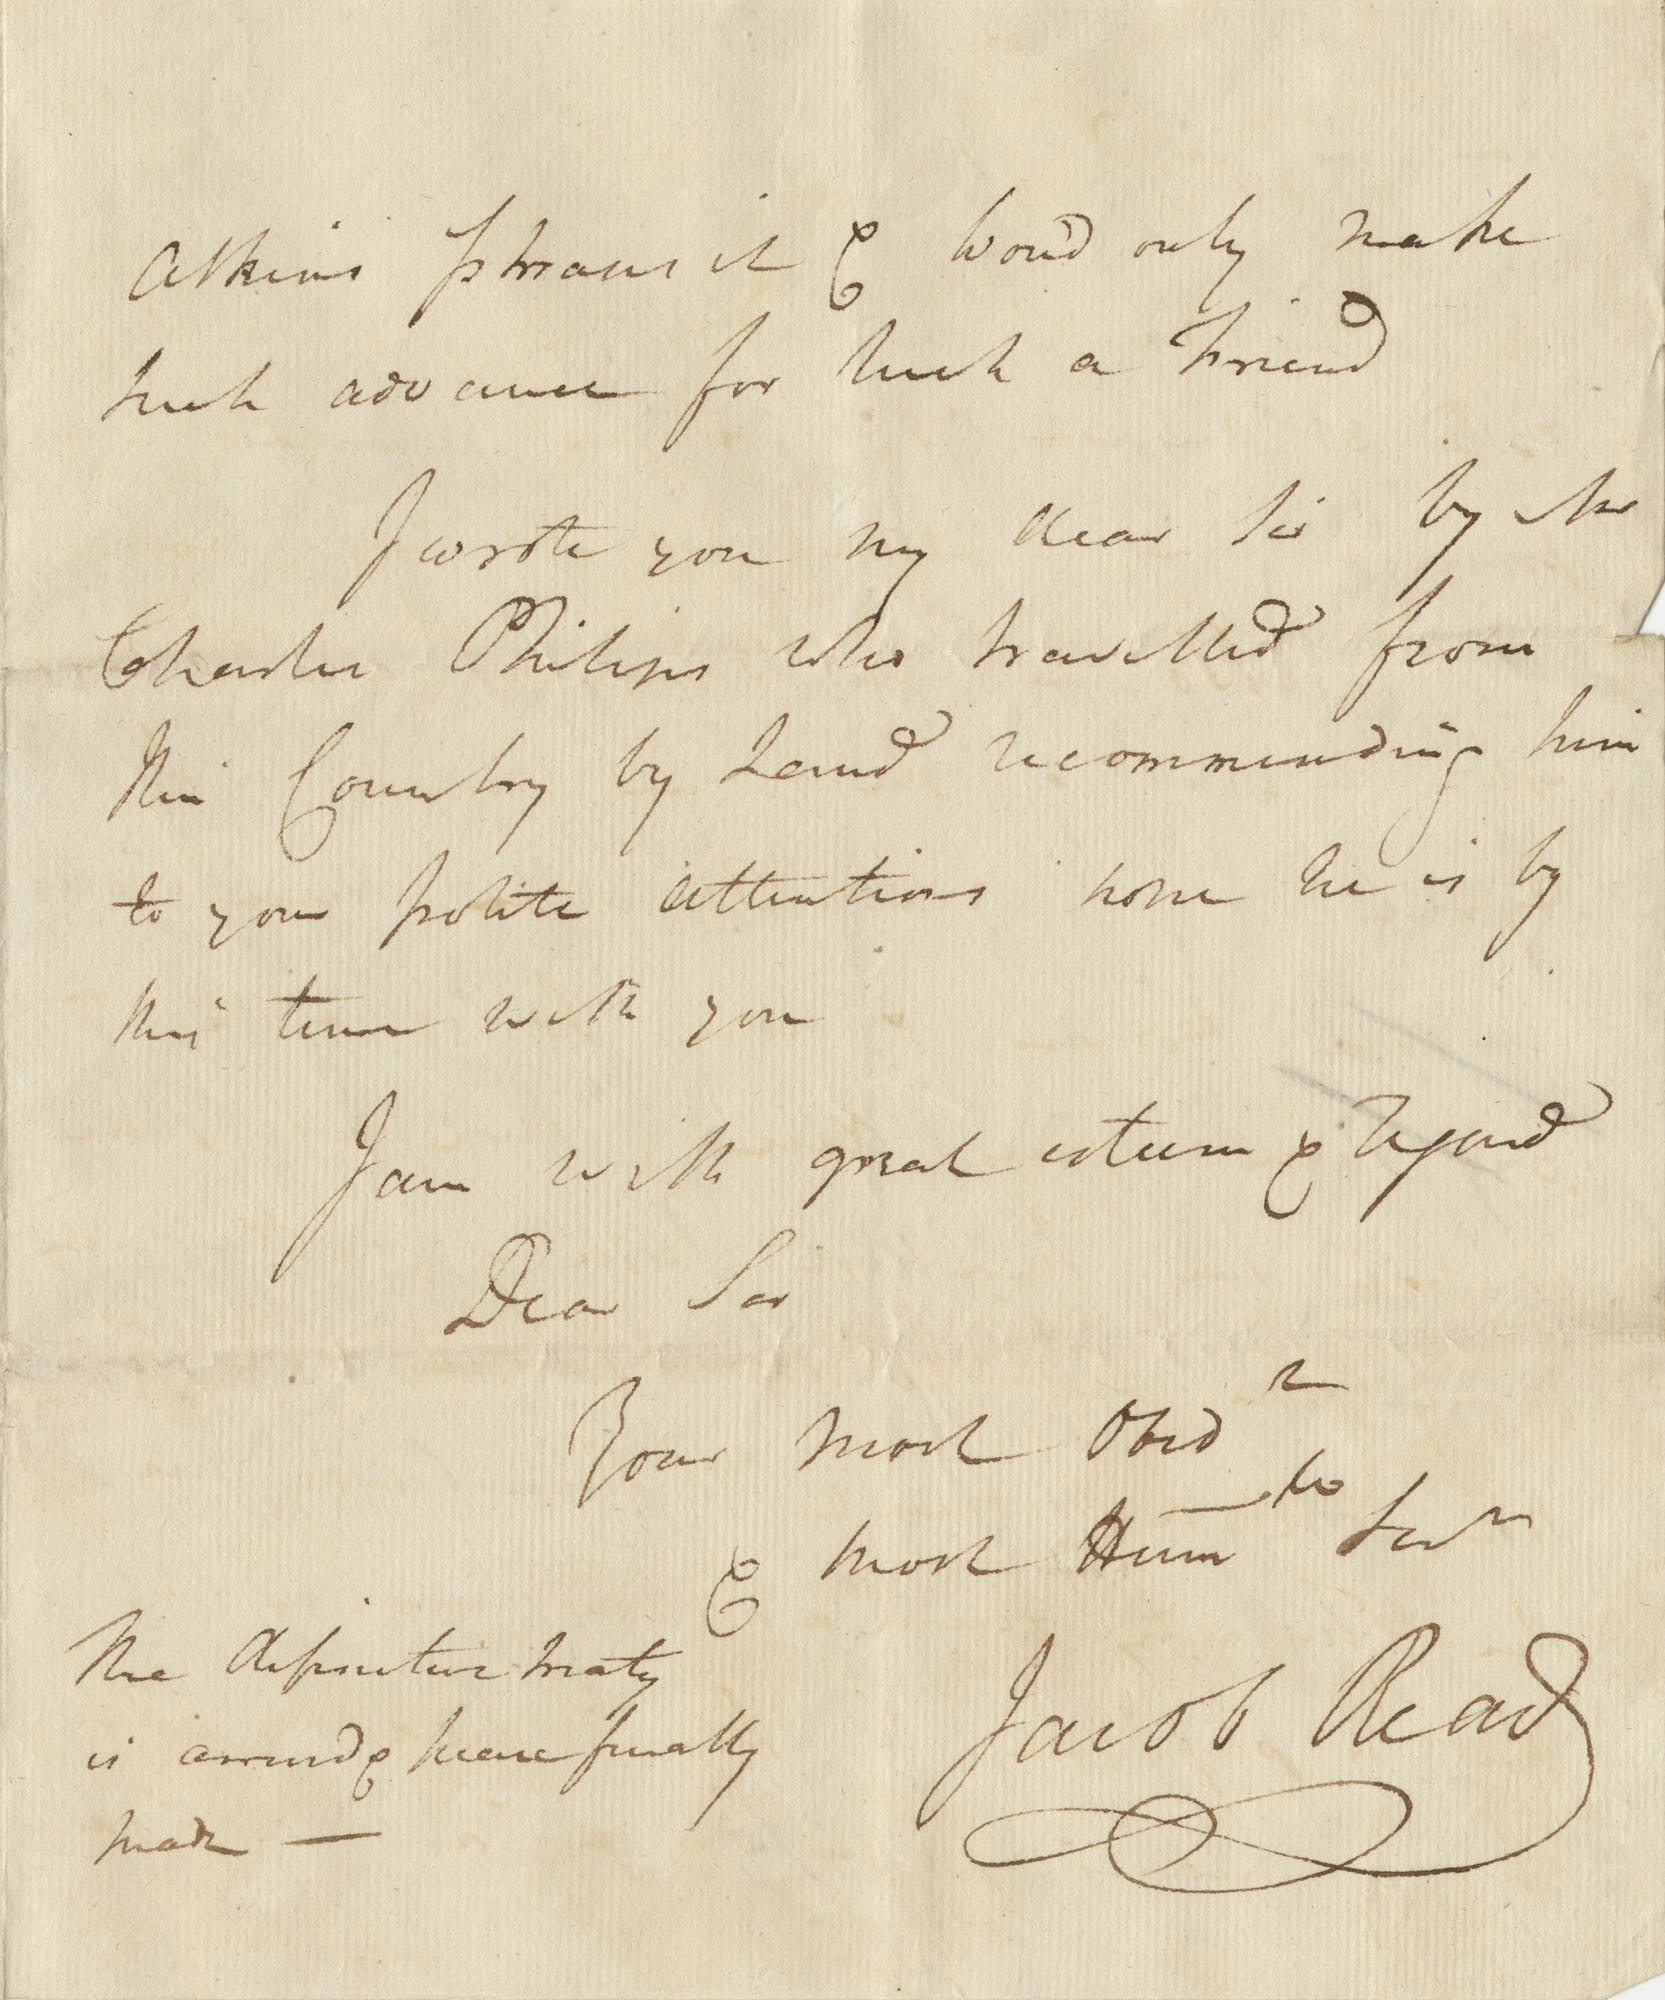 Letter from F. [Francis?] Pinckney to John F. Grimke